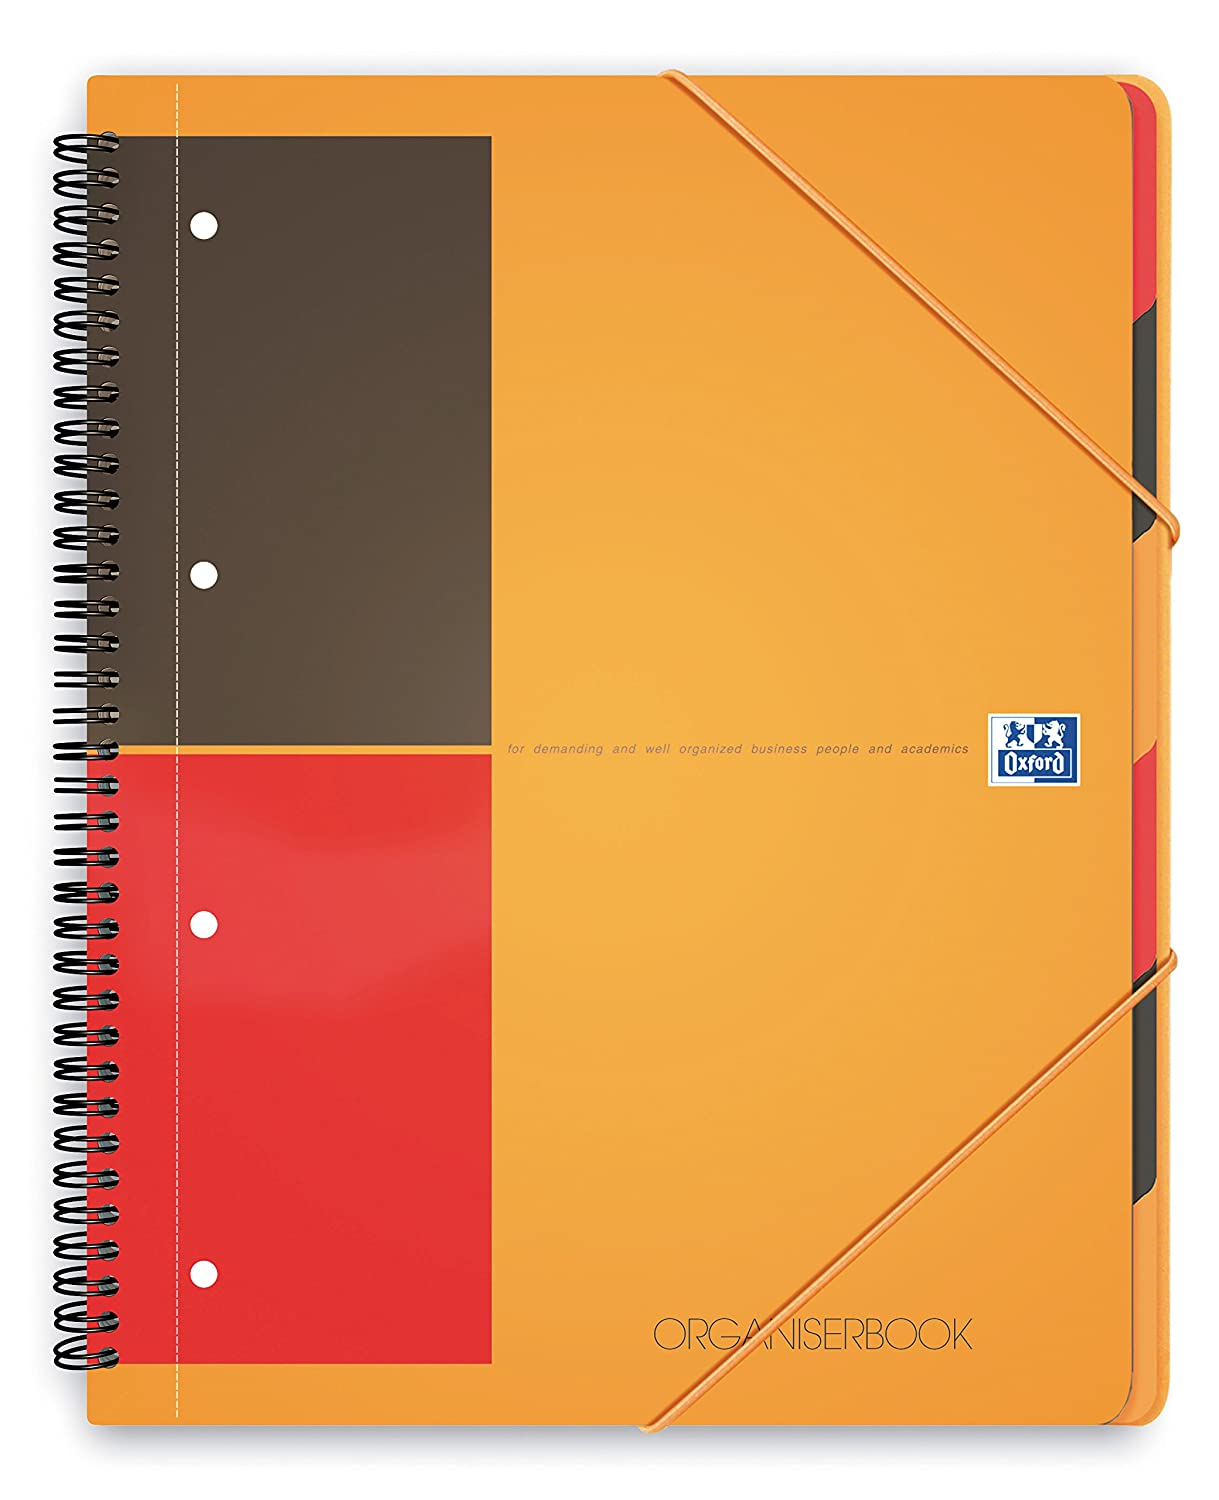 Oxford International Organiserbook Cahier A4+ Polypro 160 Pages Petits Carreaux 5 x 5 100102777